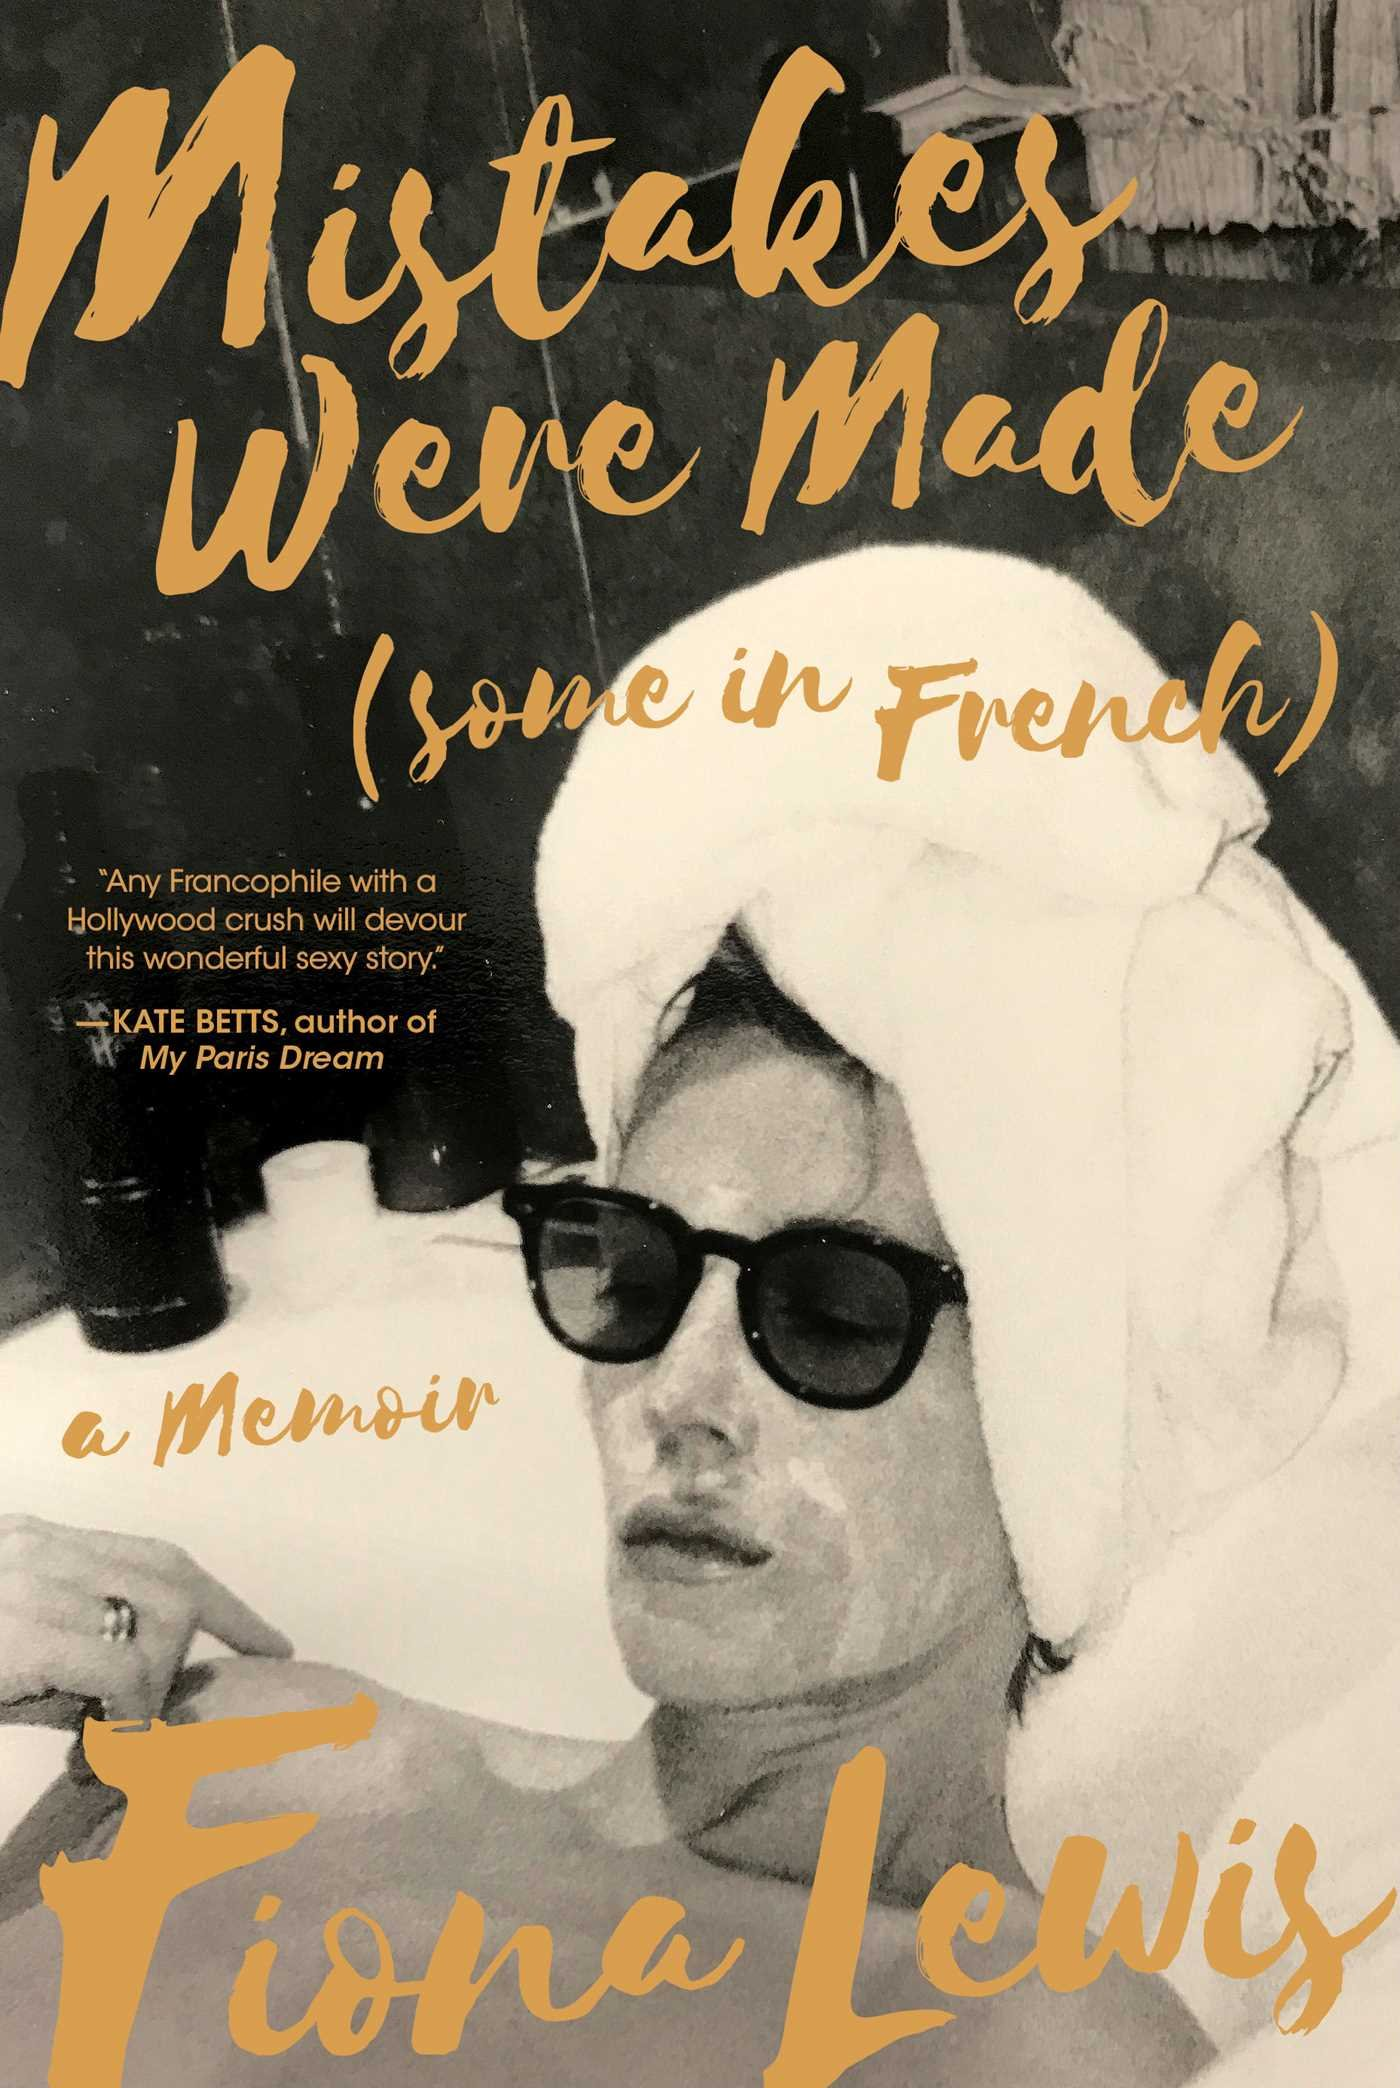 Fiona Lewis Book Cover - Mistakes Were Made (some in French)